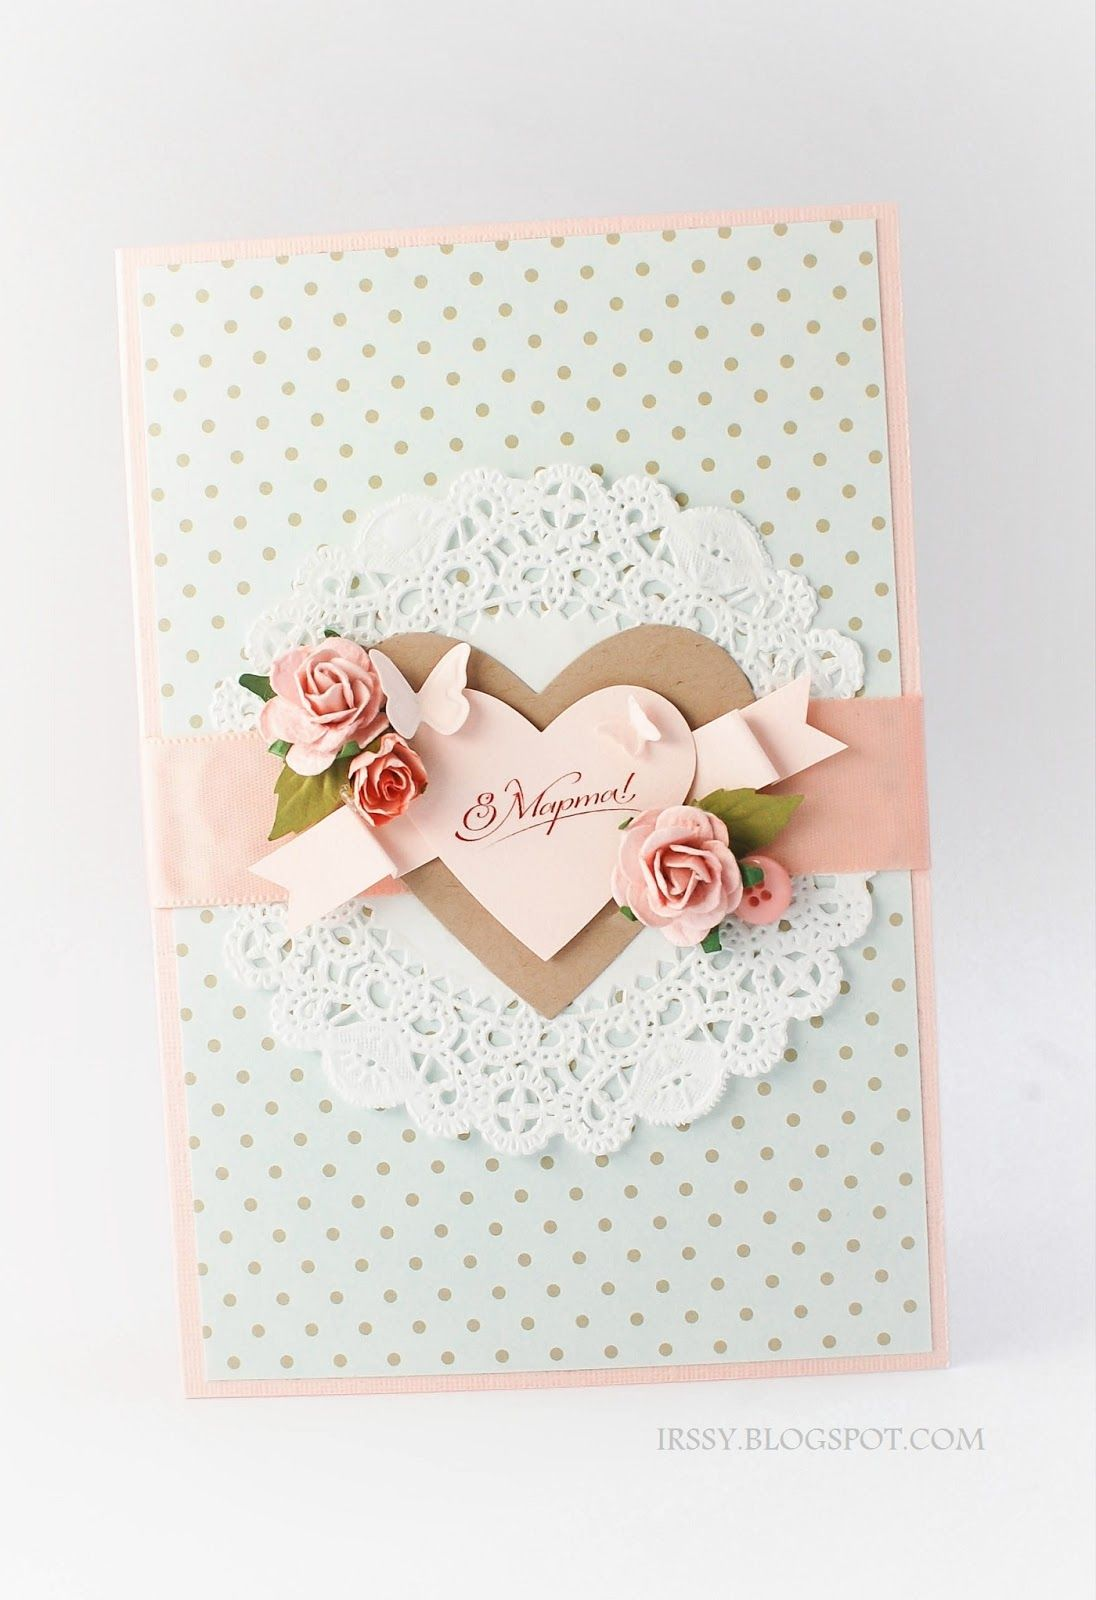 Stampin\' with Irina | Cards | Pinterest | Cards, Card ideas and ...